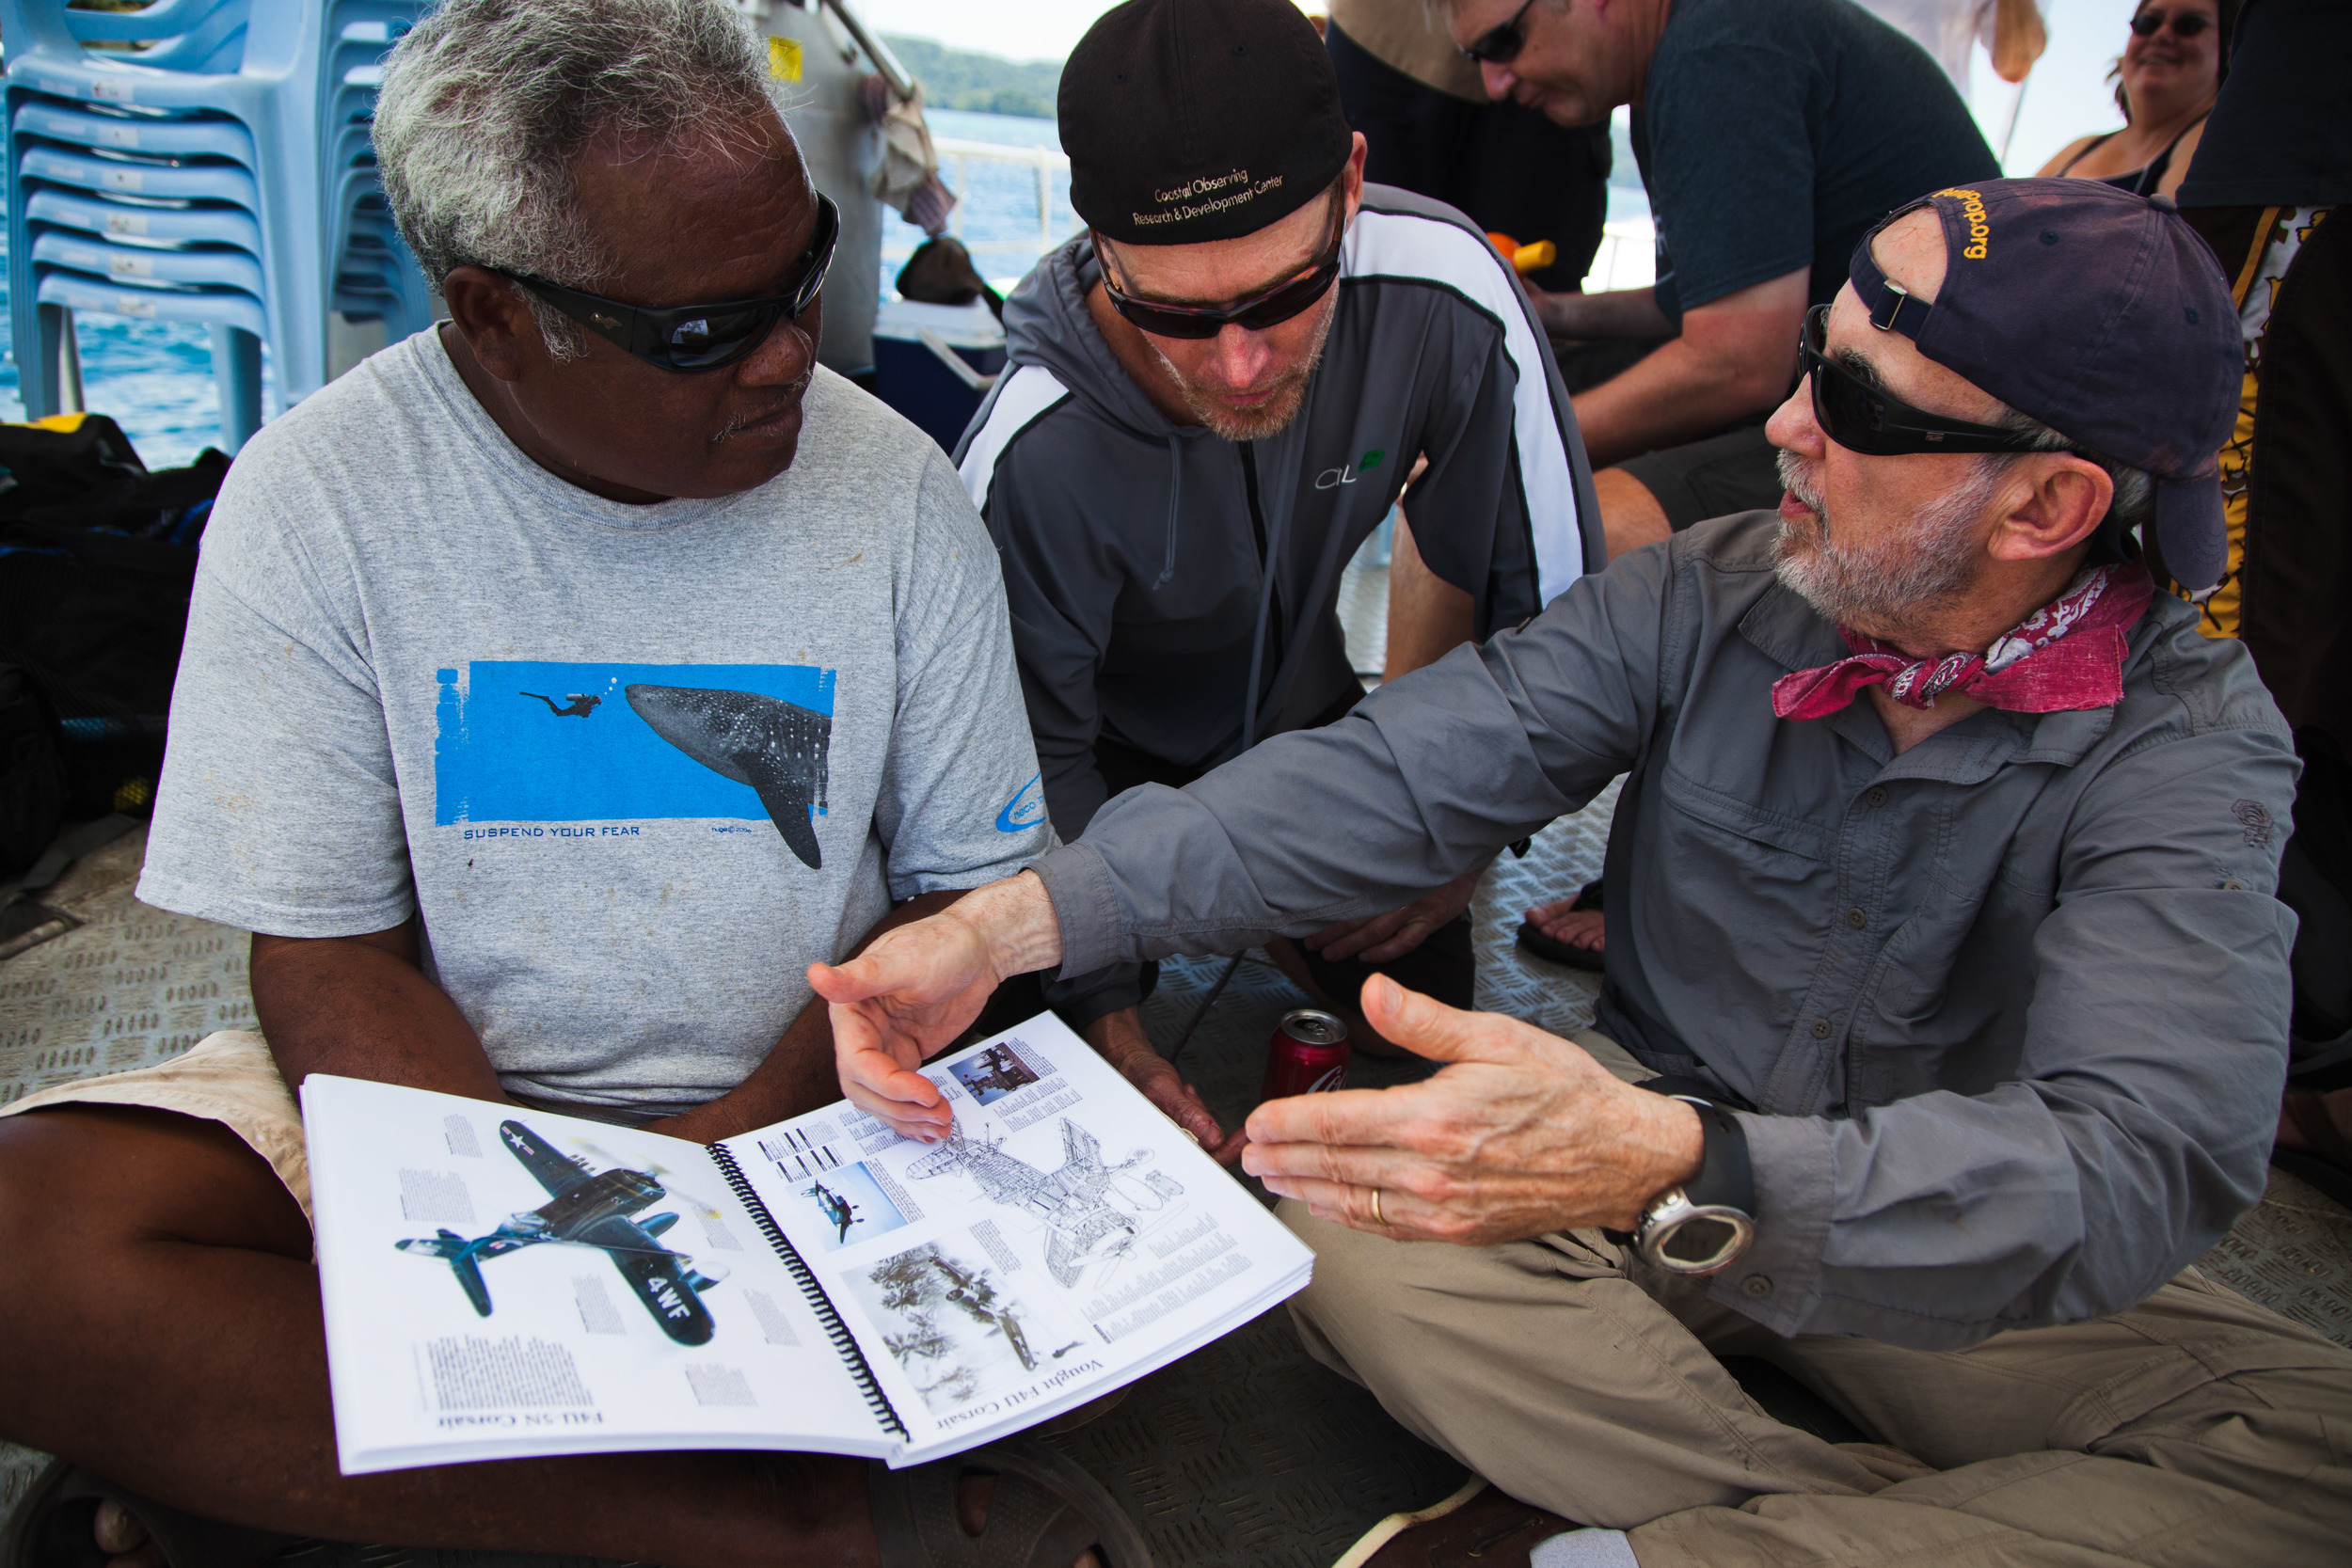 Joe Maldangesang [left] and Pat Scannon [right] of BentProp with Scripps's Shannon Scott [center] study various warplanes flown into battle over Palau. Credit: Andy Isaacson